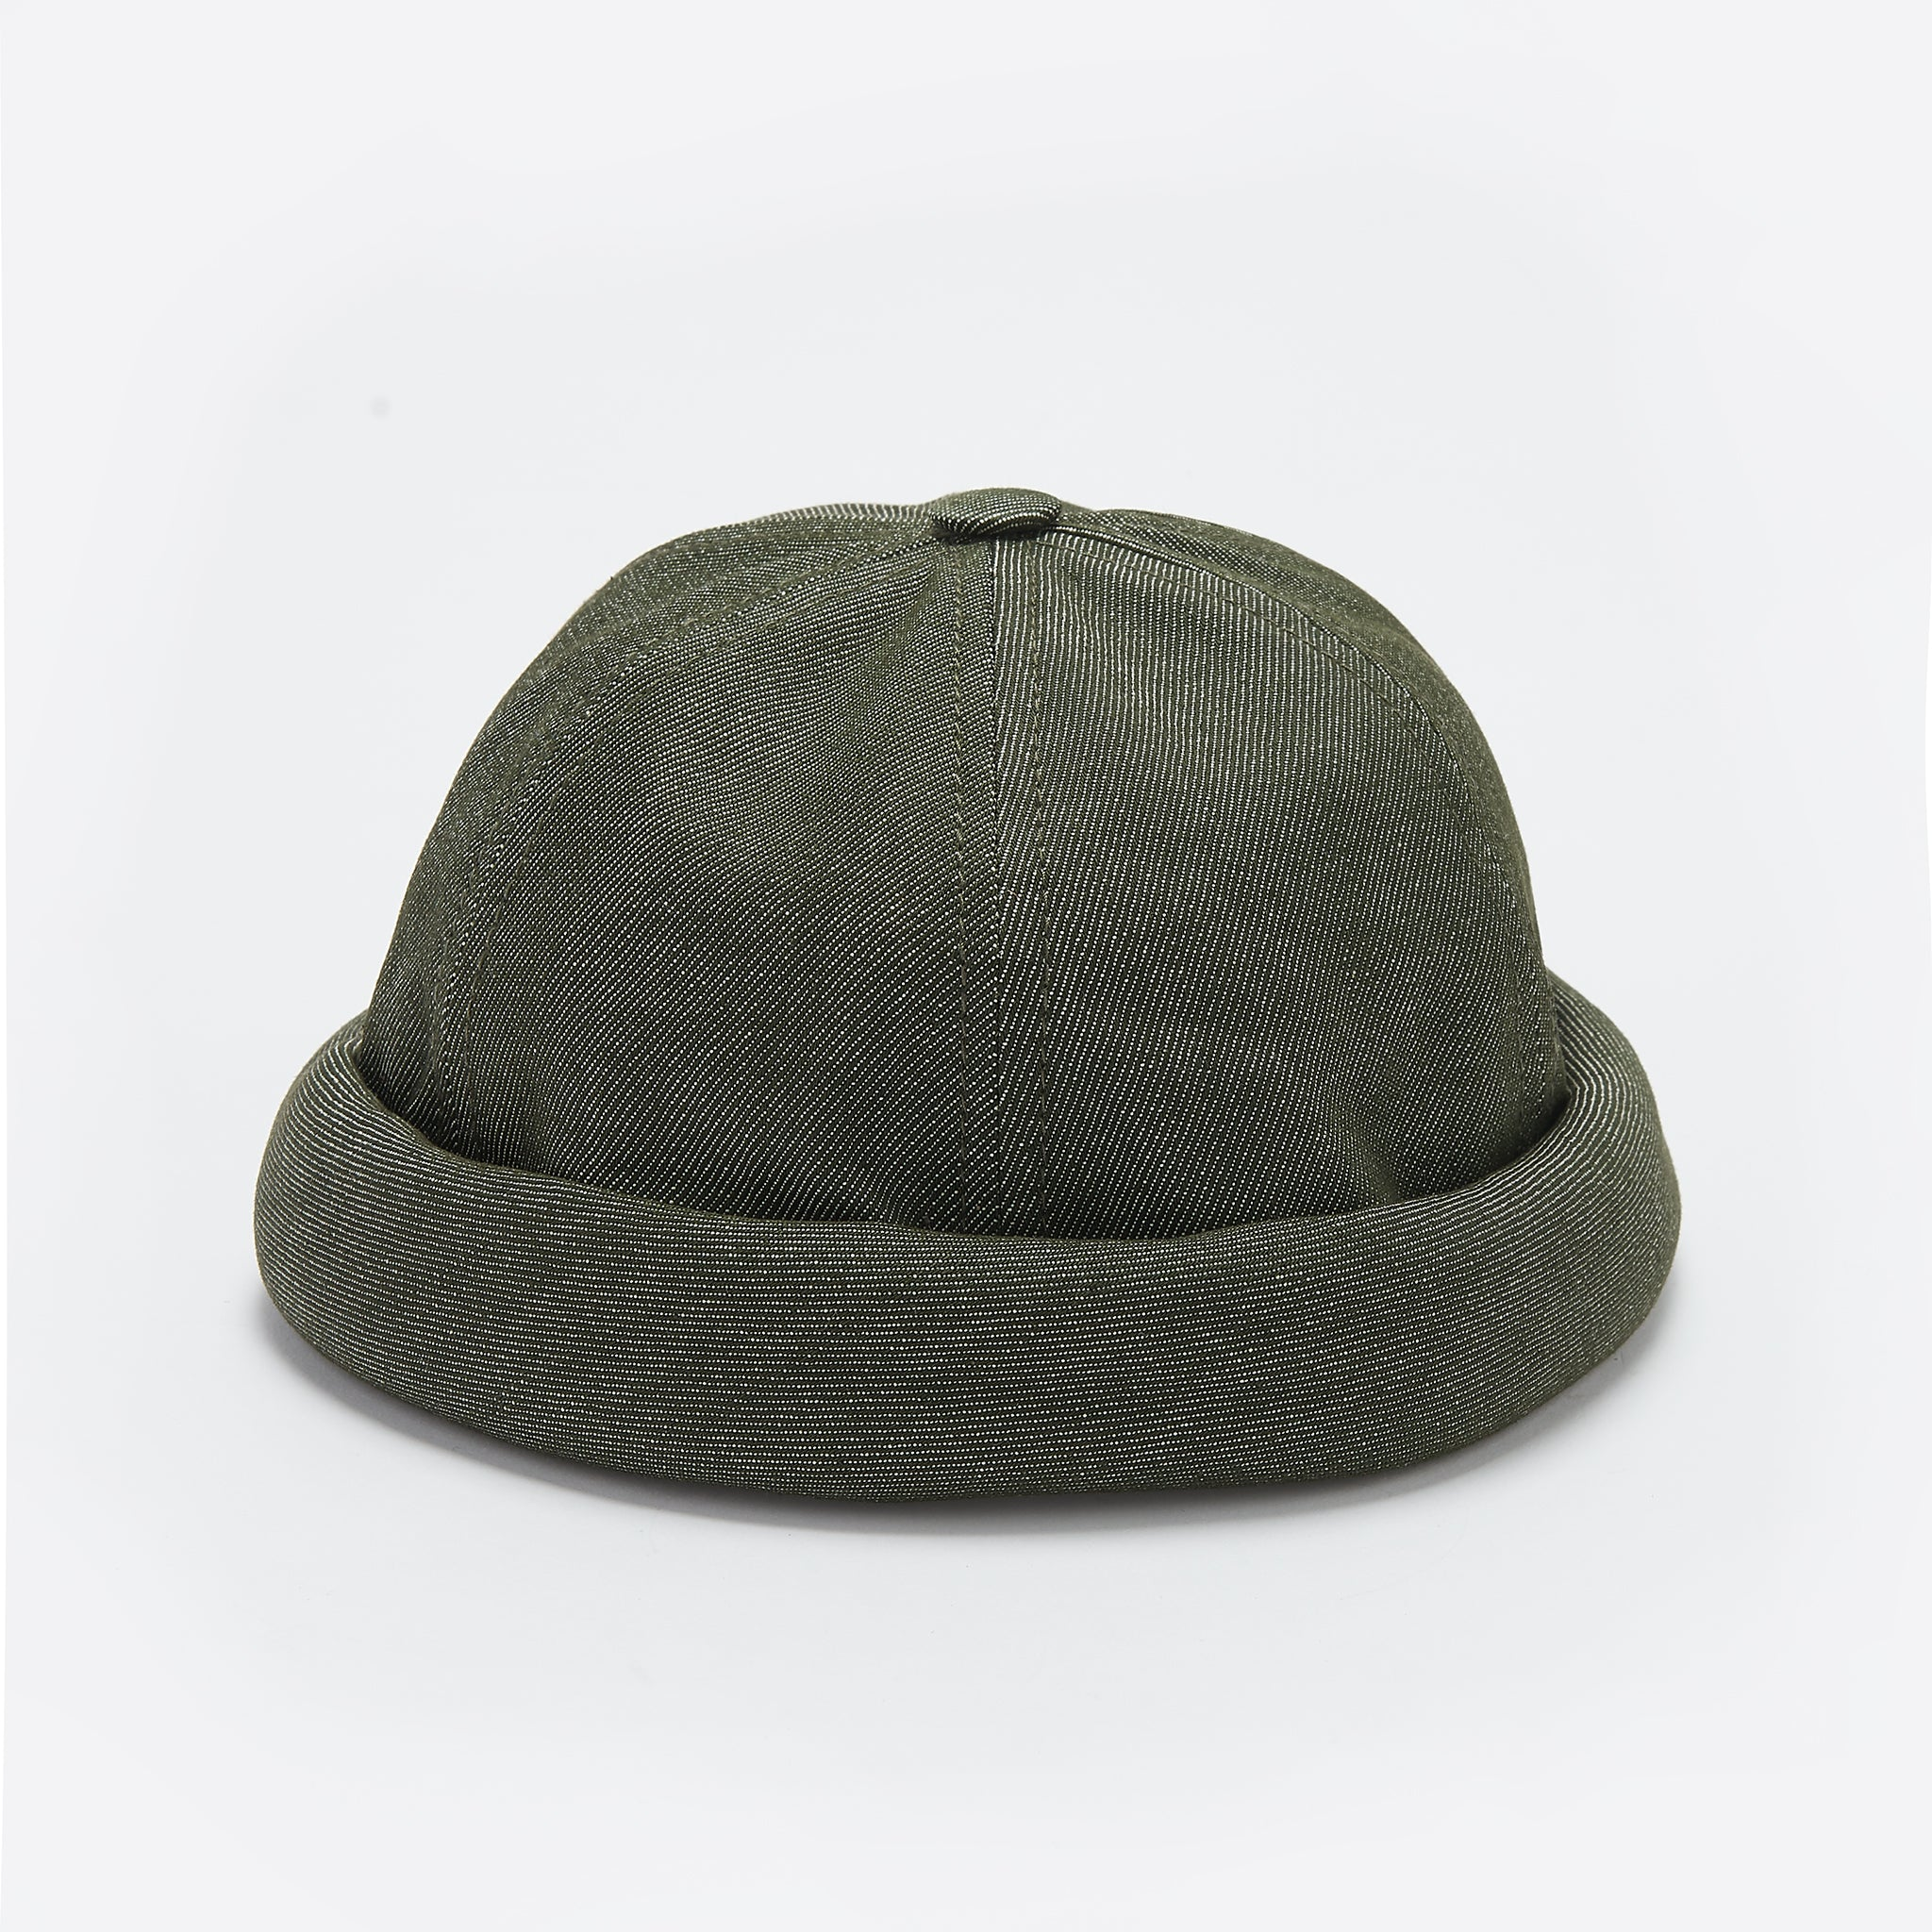 Beton Cire Miki Hat in Khaki Denim